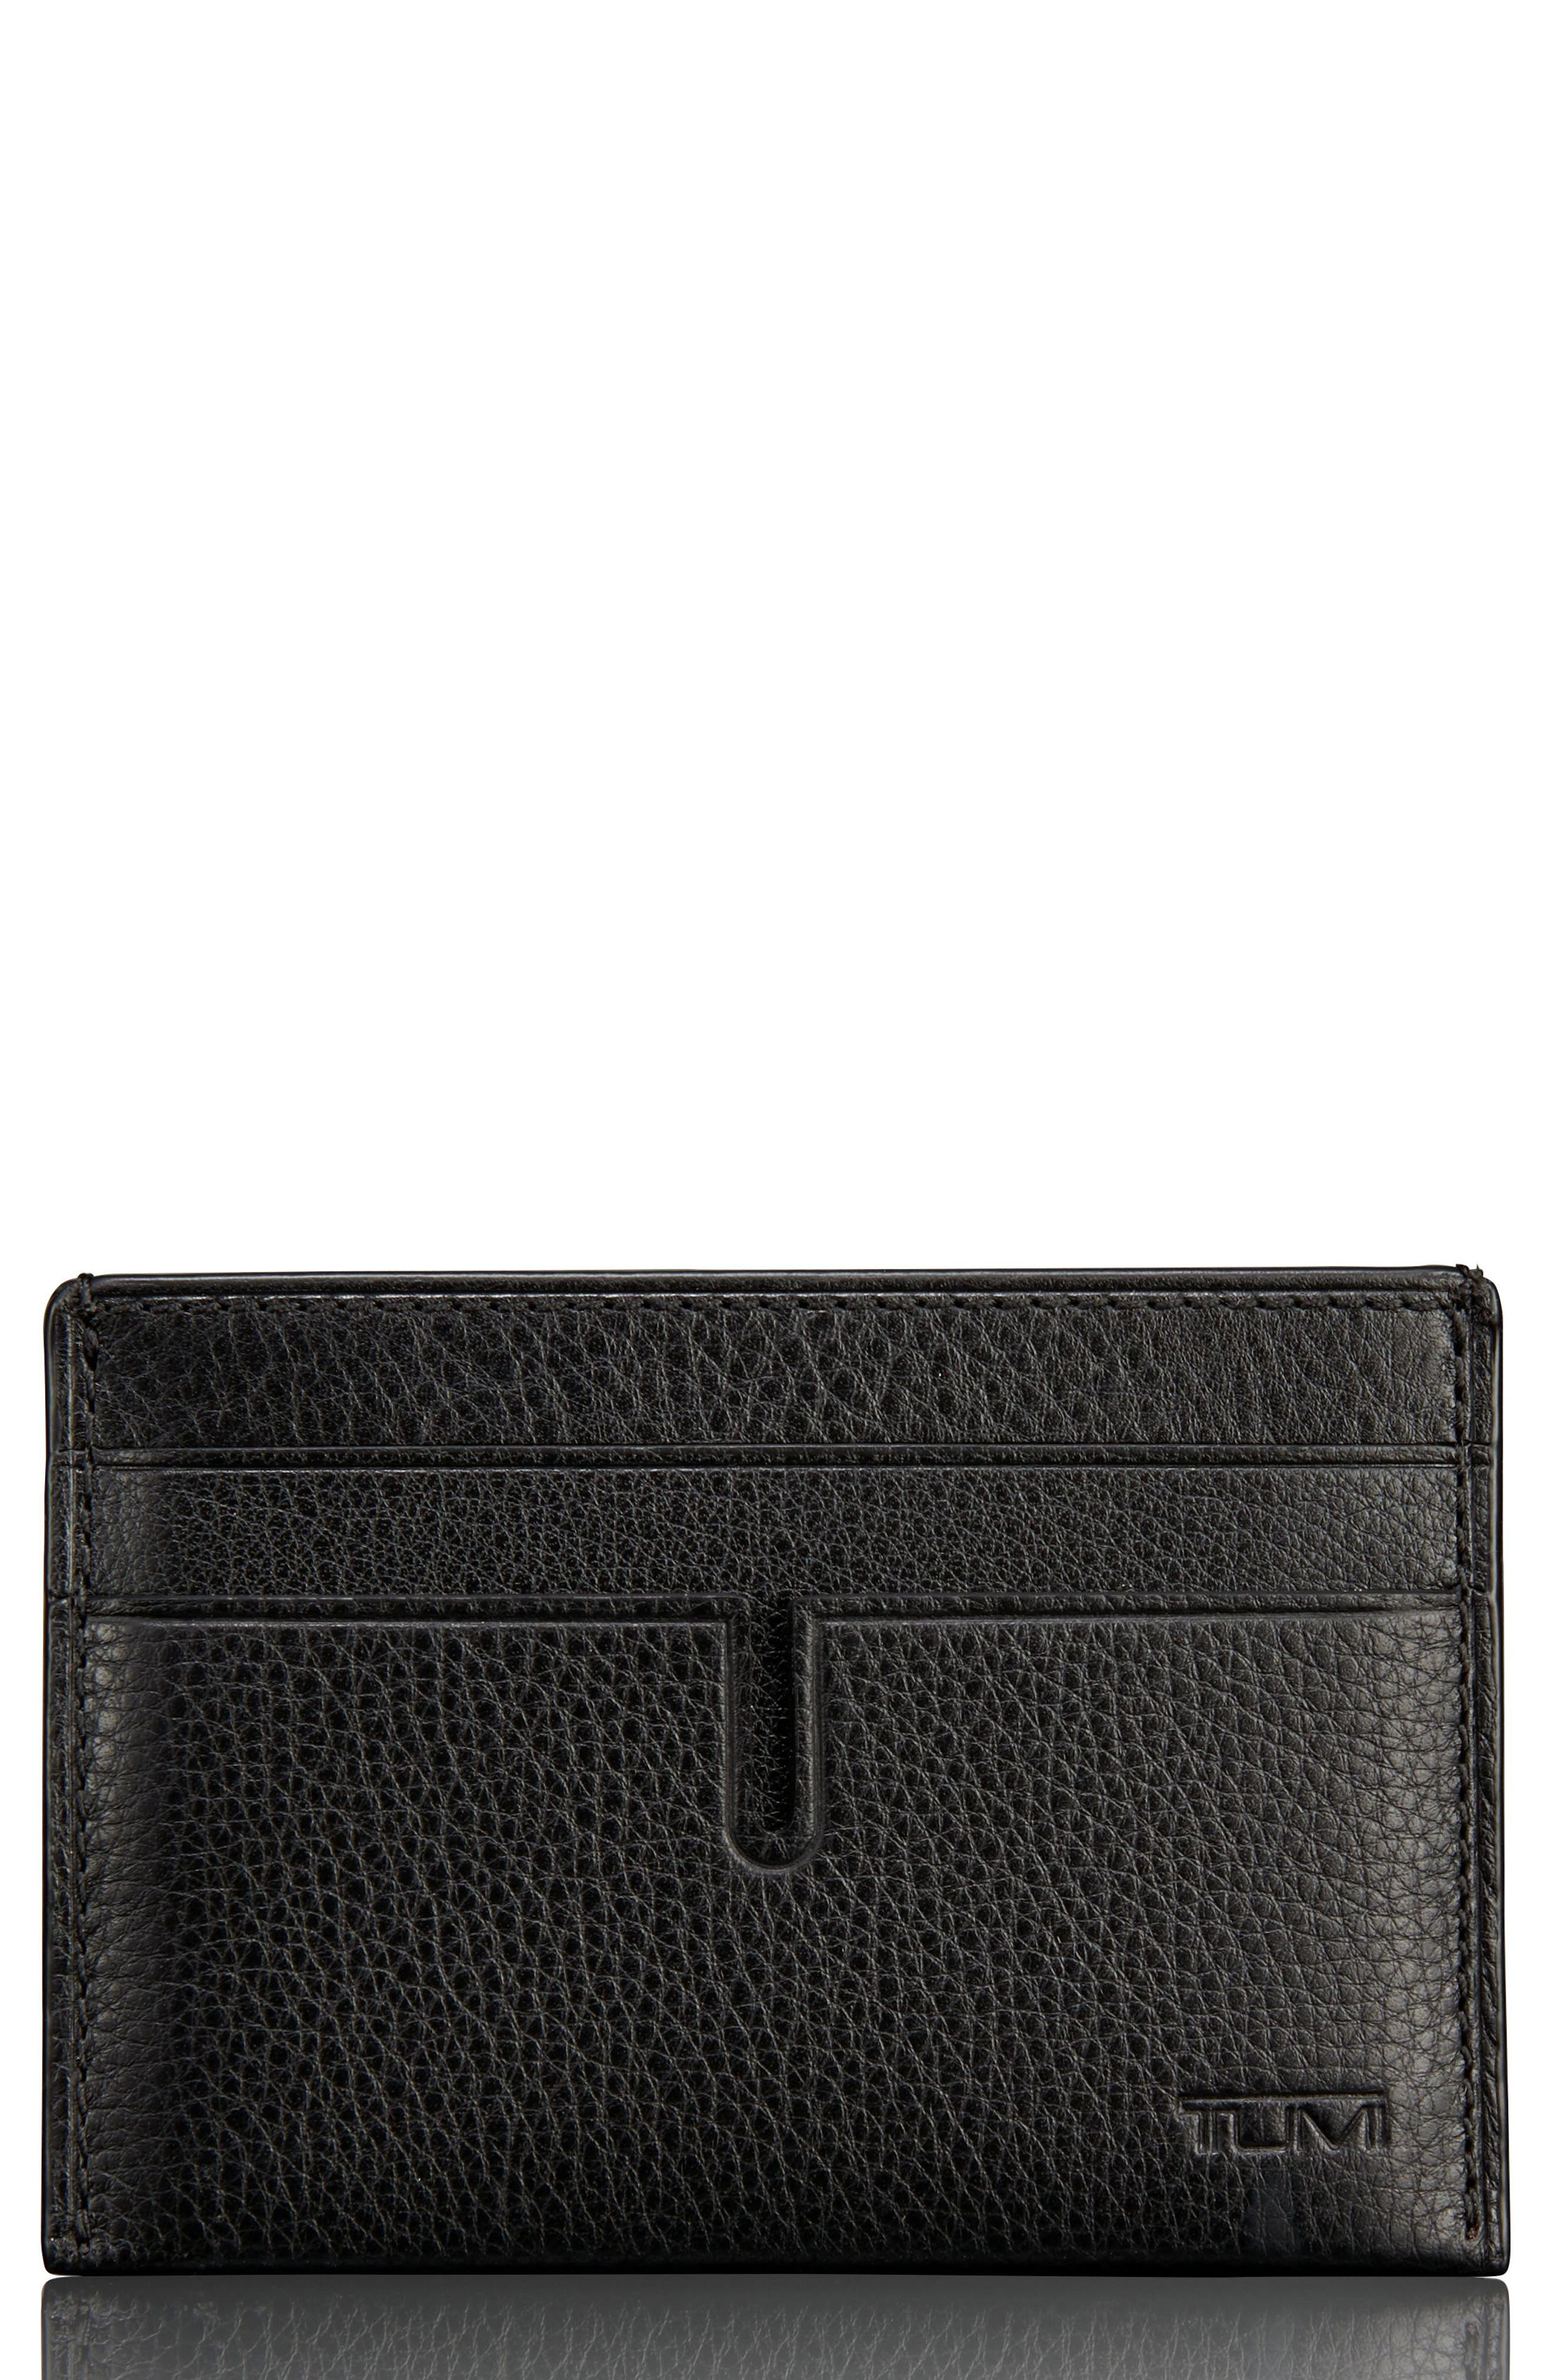 Main Image - Tumi Leather Money Clip Card Case